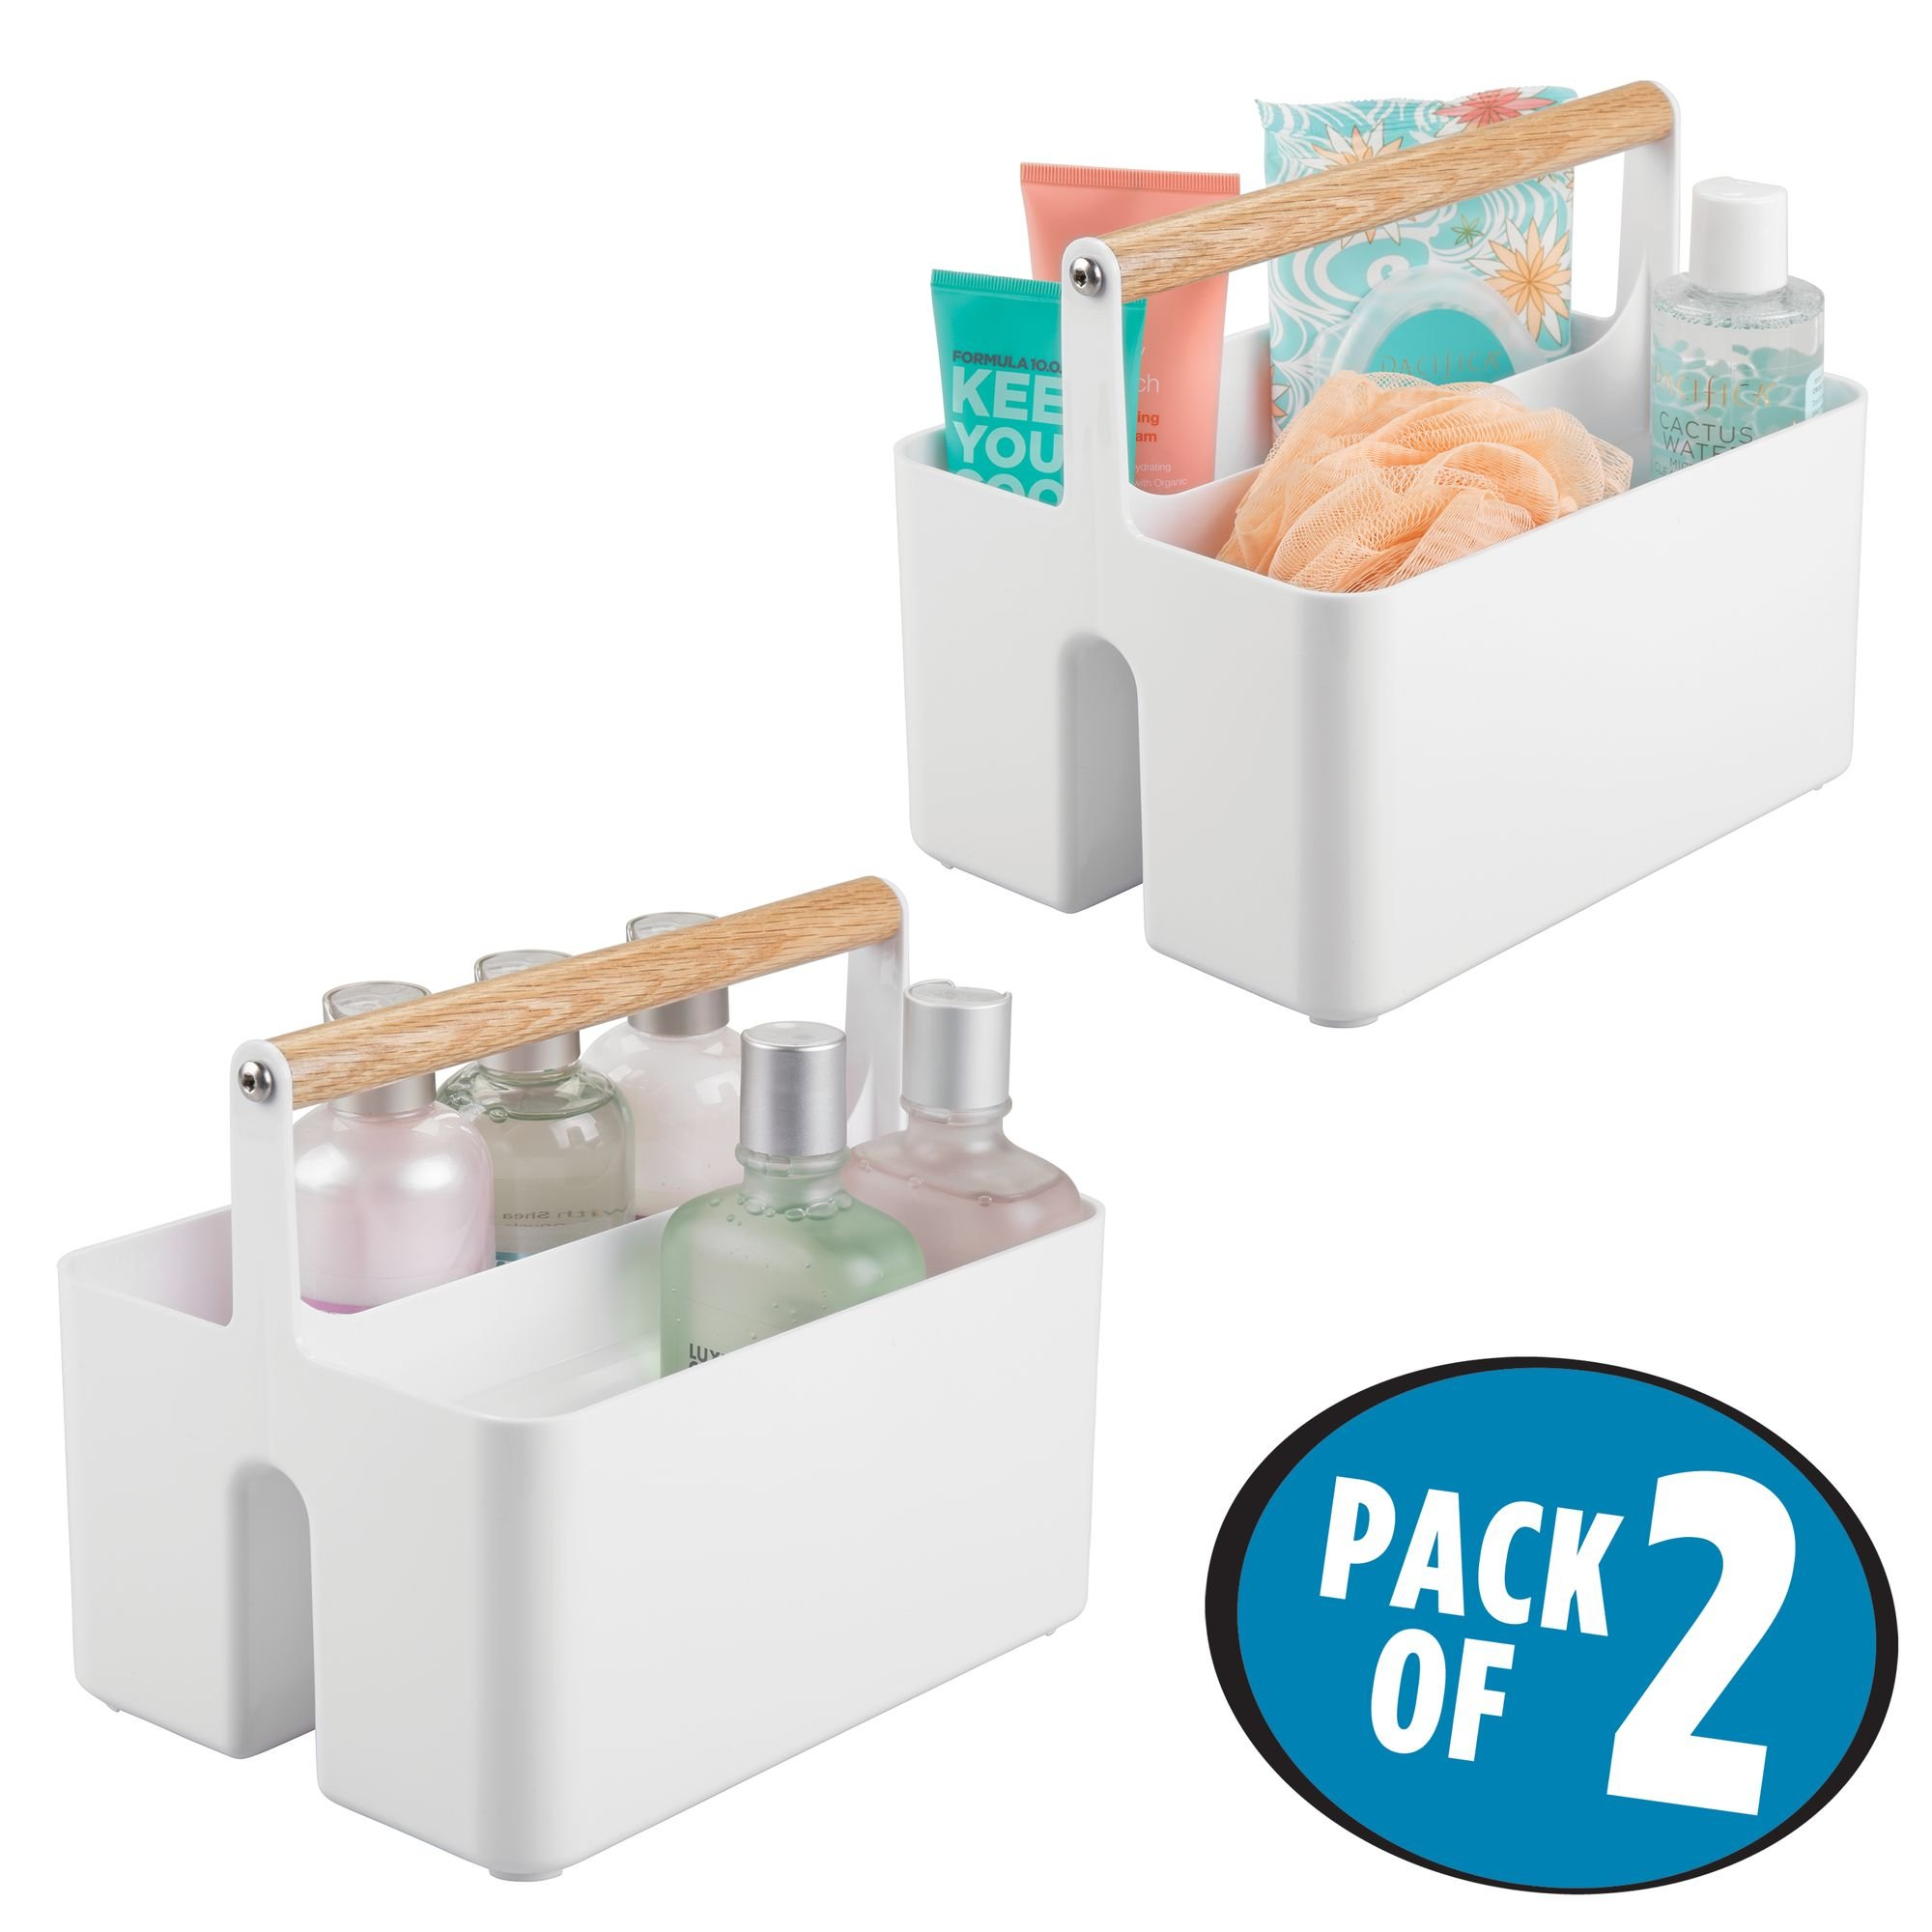 mDesign Bathroom Storage Organizer Caddy Tote, Divided Basket Bin with Natural Wood Handle - BPA Free, 2 Sections for Hand Soap, Body Wash, Shampoo, Conditioner, Lotion - Pack of 2, White/Natural